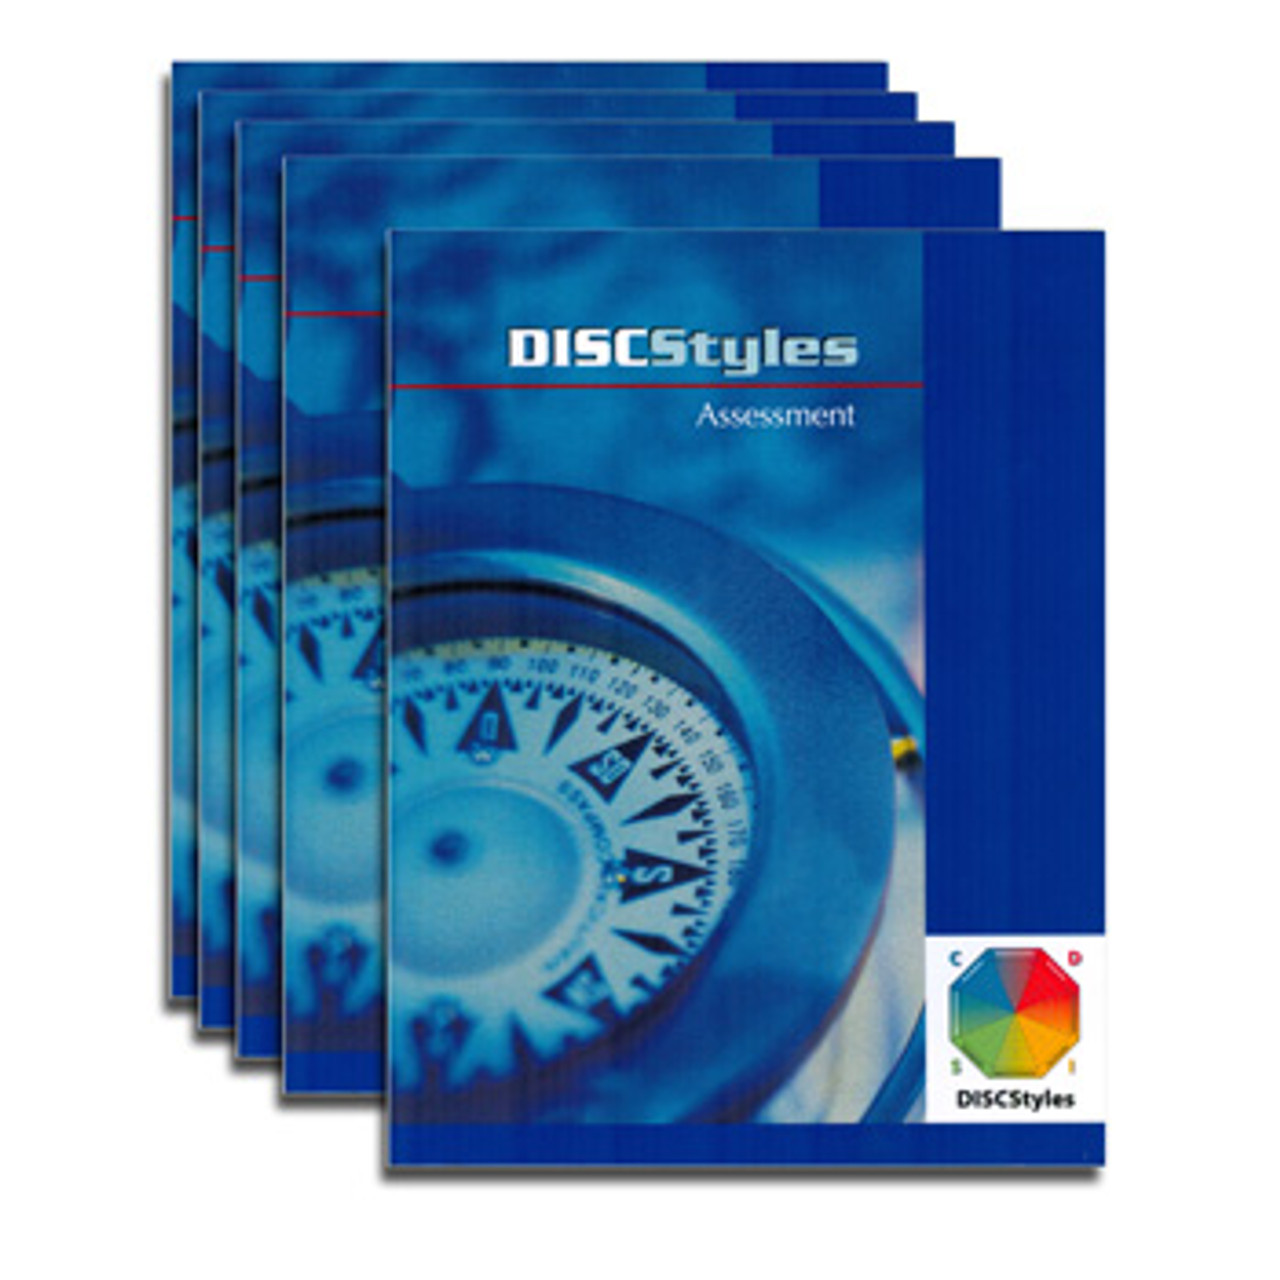 HRD DISC Style Assessments, 5-pack paper assessment